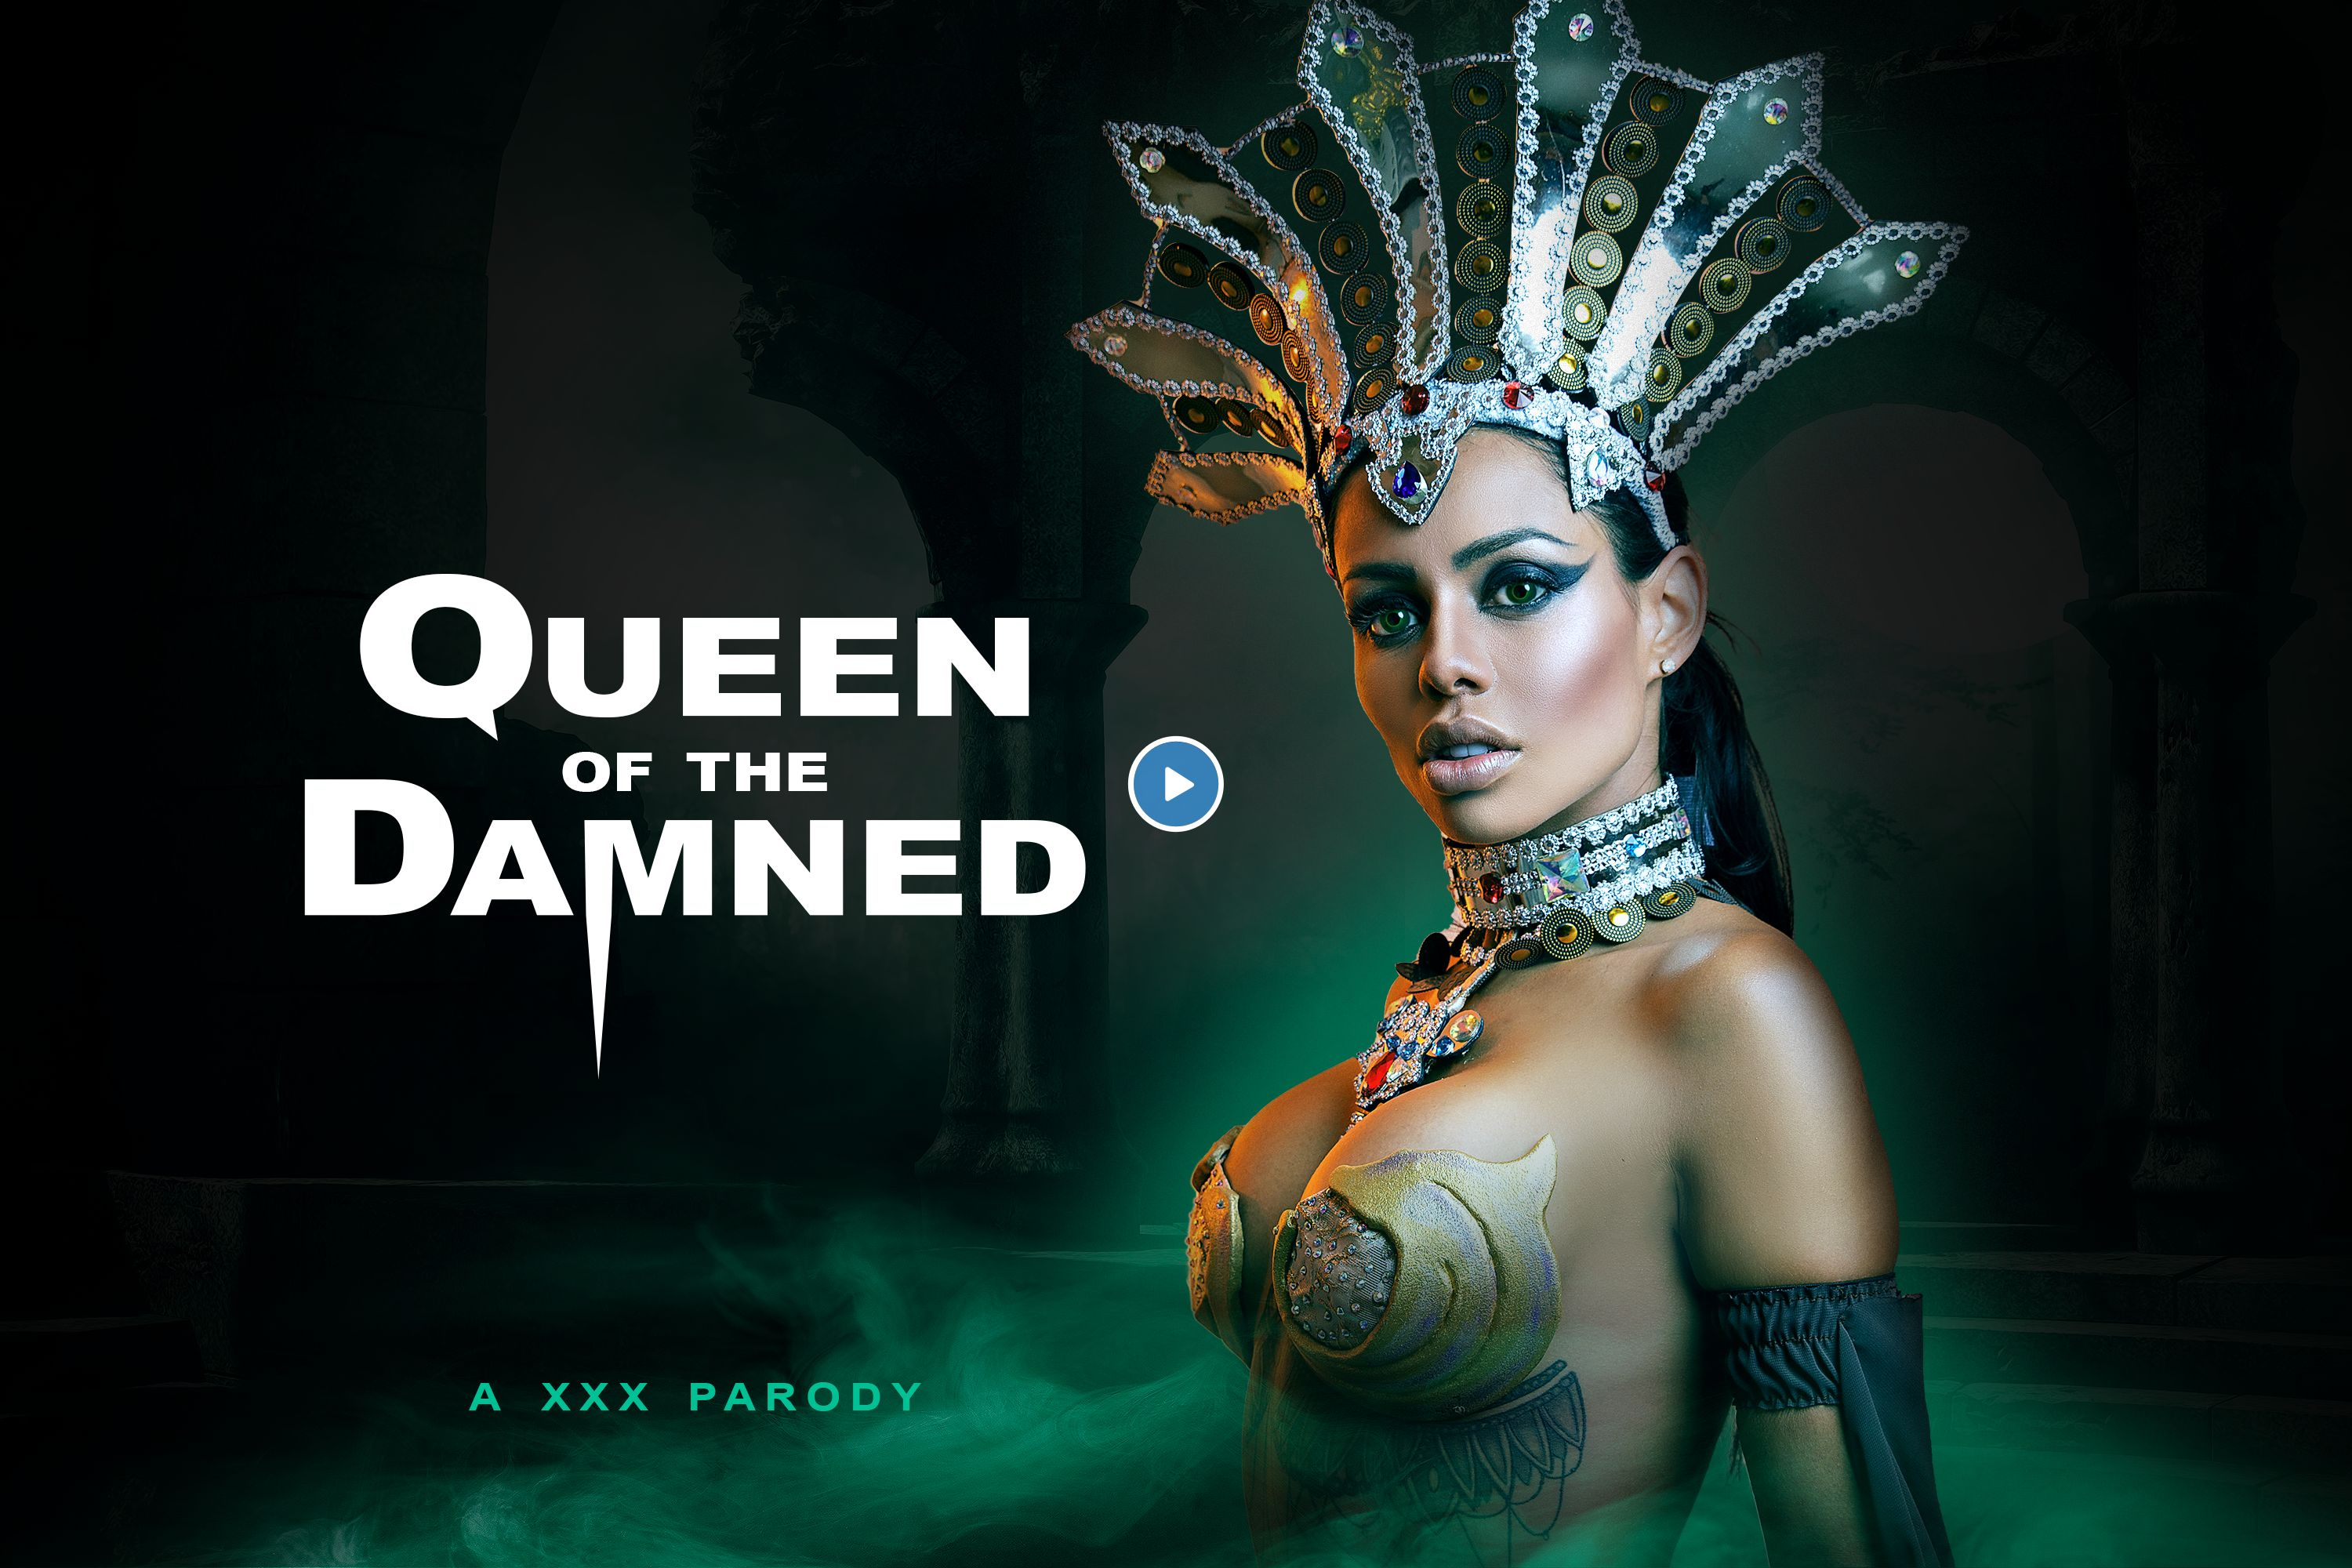 Canelaskin Porn queen of the damned a xxx parody - vr cosplay porn video